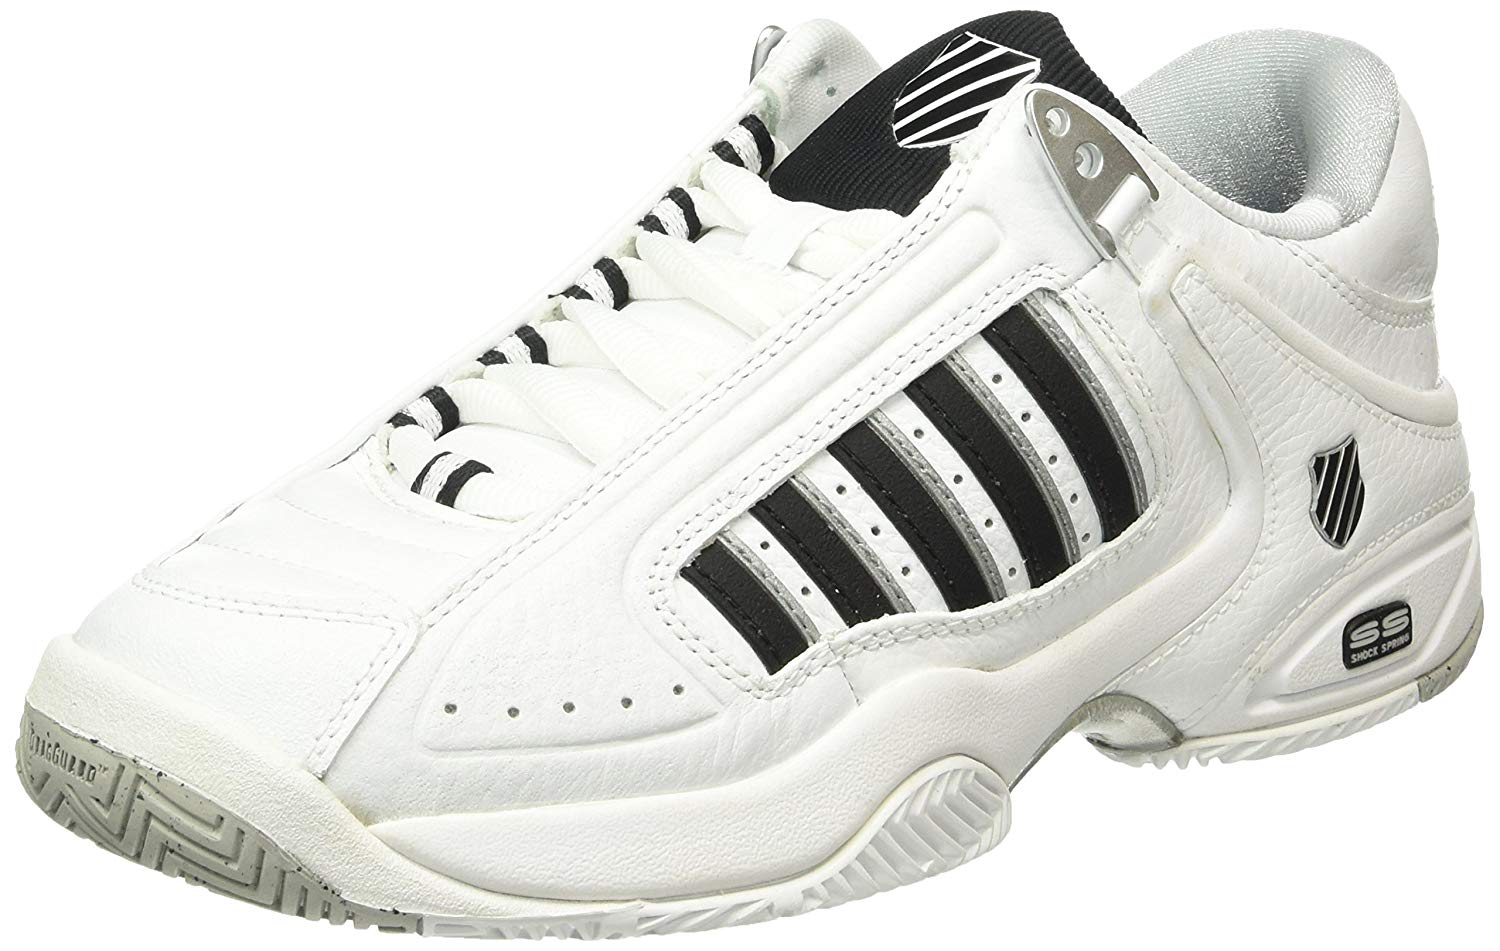 online retailer 11ef5 89861 Get Quotations · K-Swiss Men`s Defier RS Tennis Shoes White-()